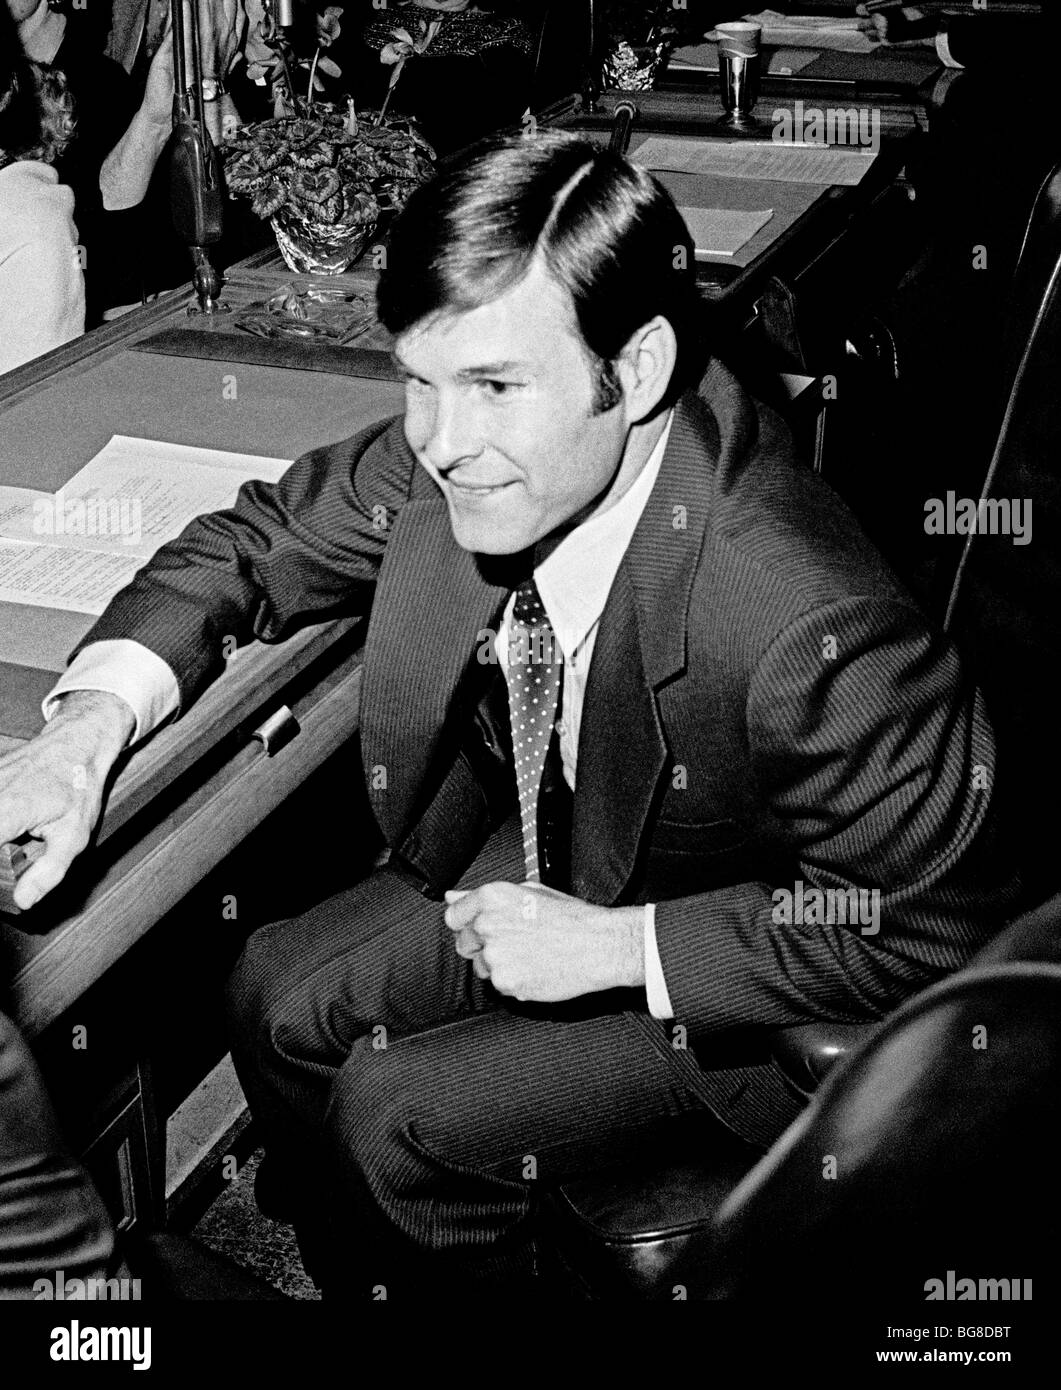 newly elected Supervisor, Dan White in San Francisco City Hall. 01/09/1978 - Stock Image